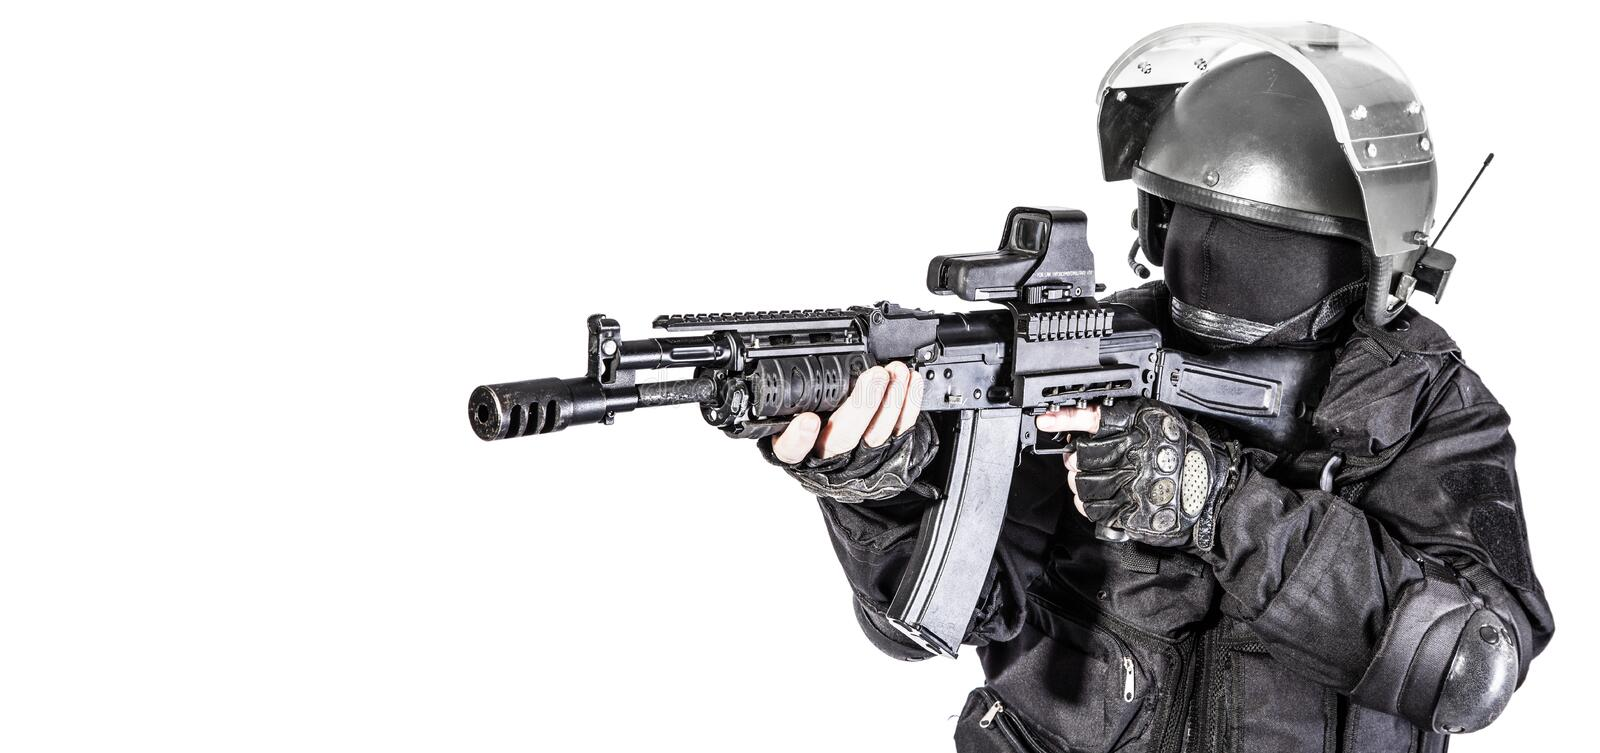 Russian special forces royalty free stock photography